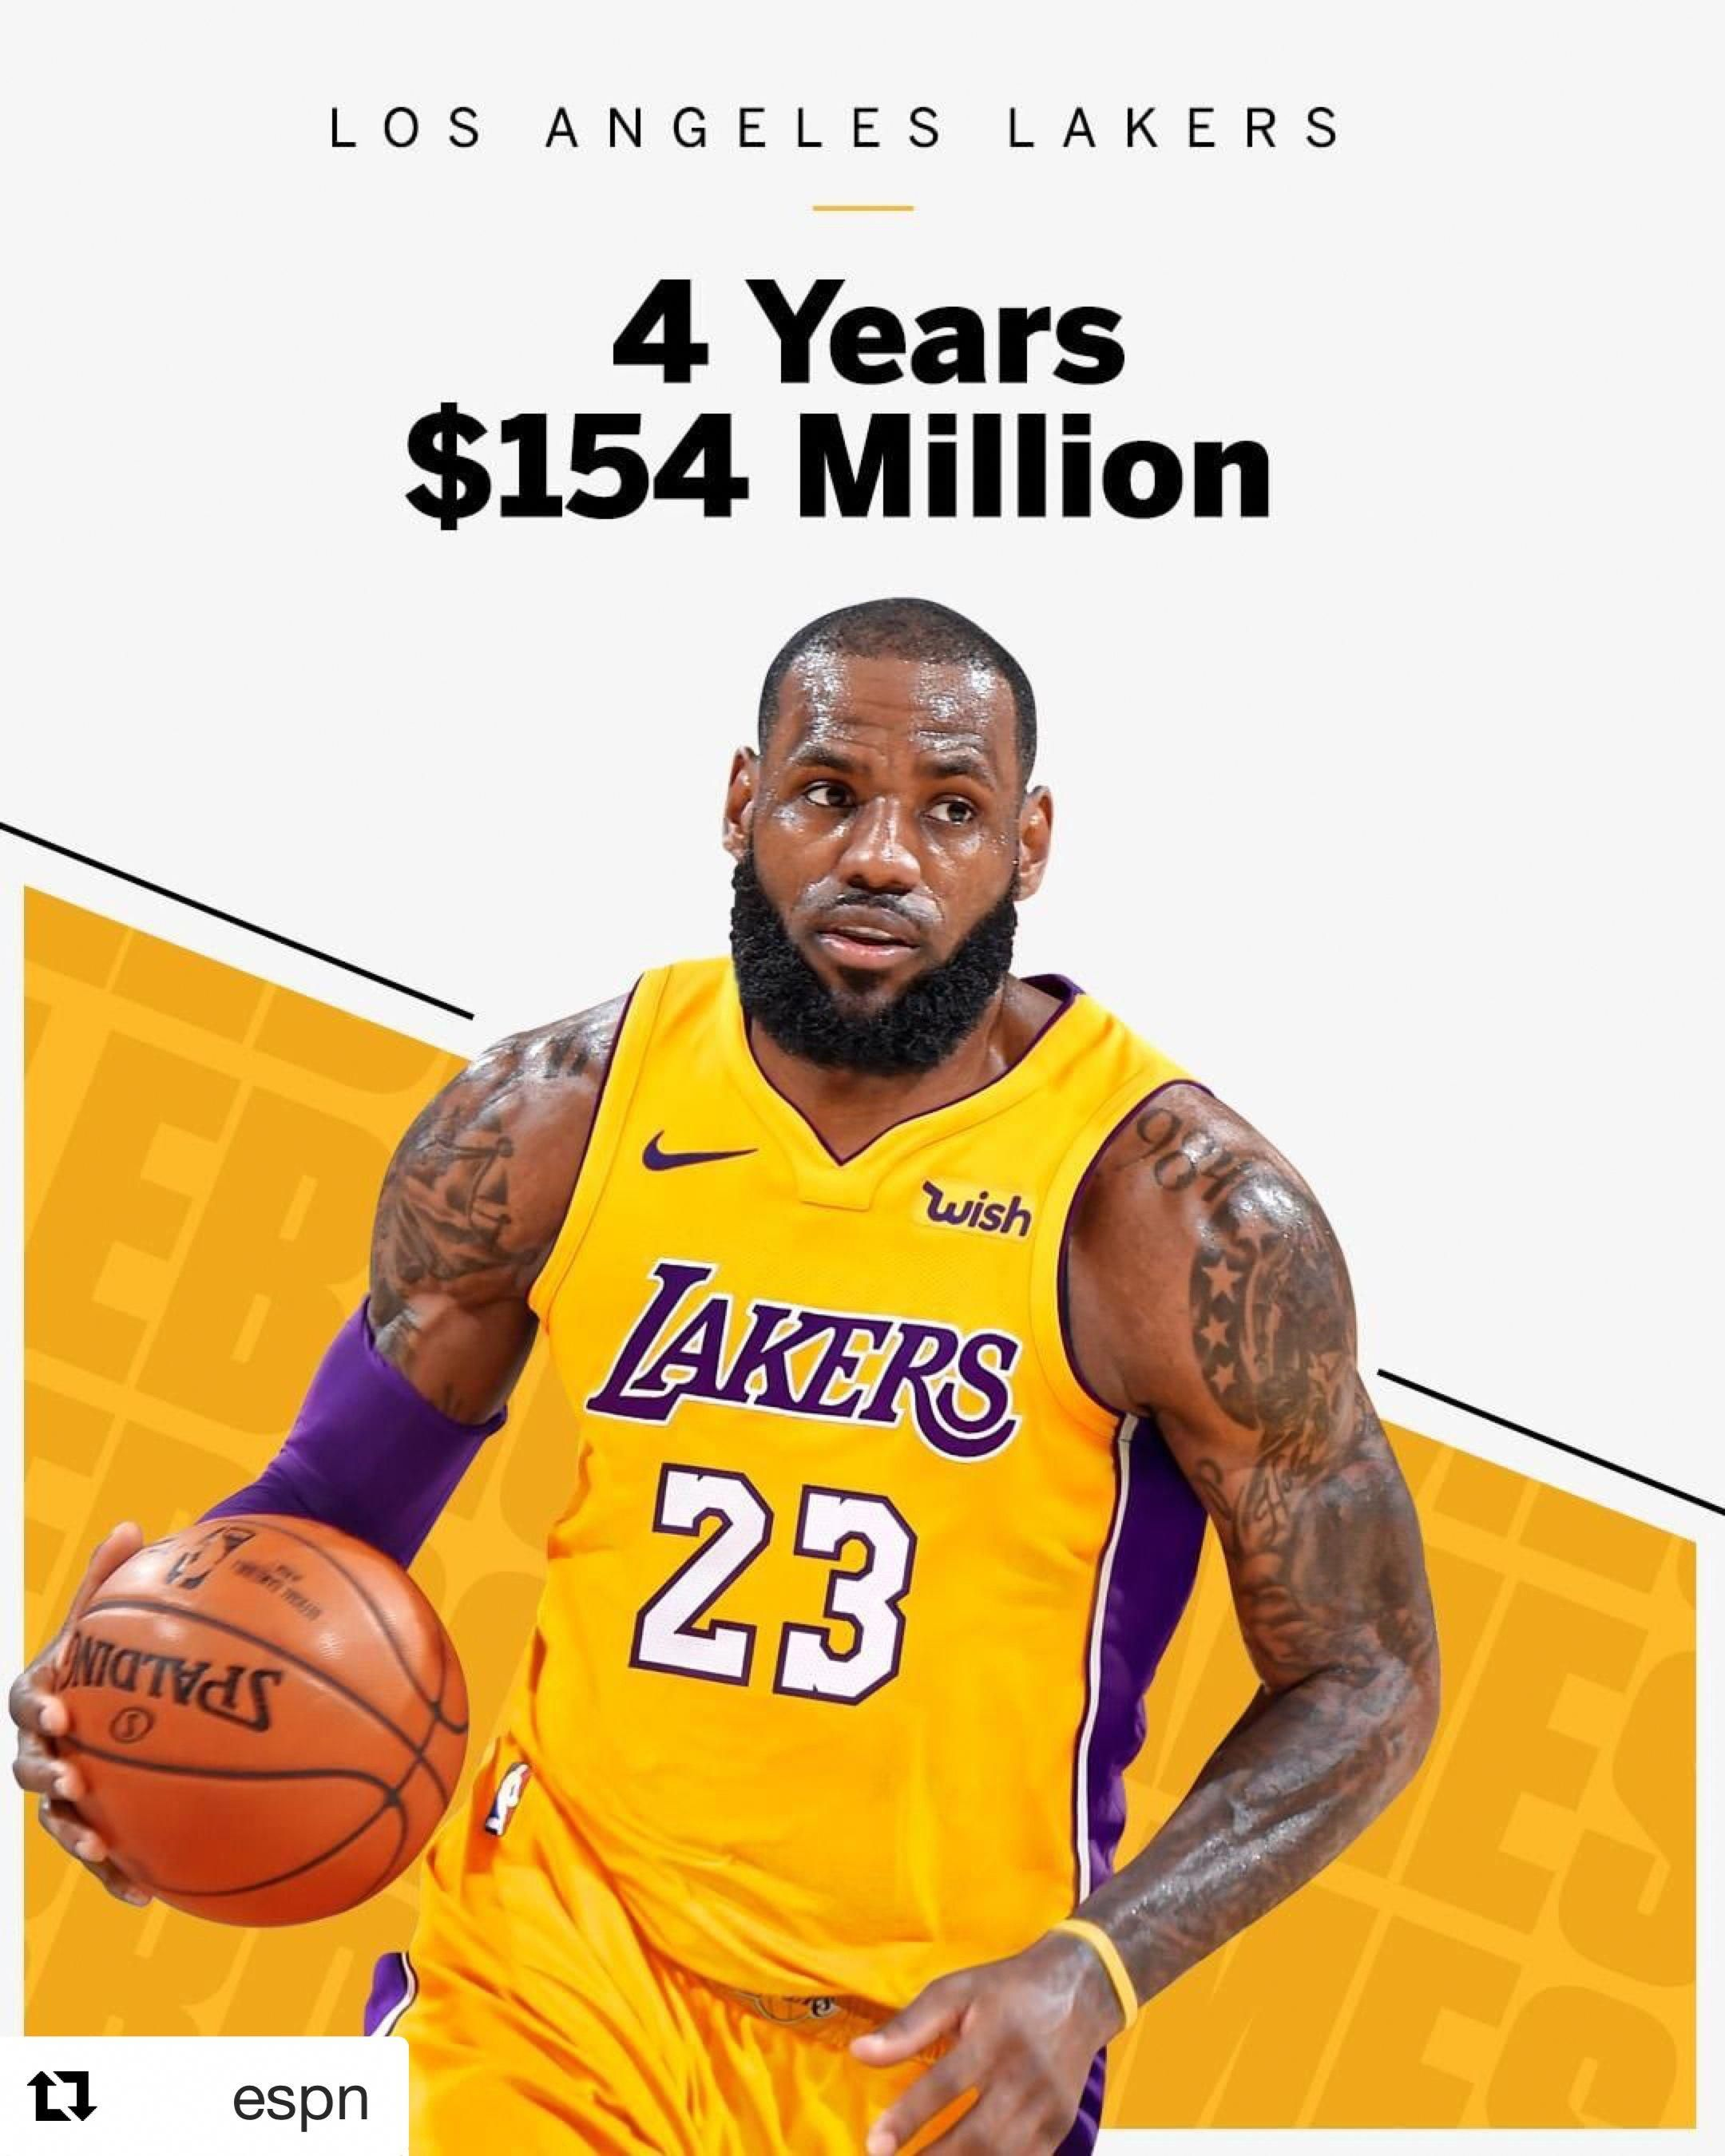 LeBron James signed with the LA LAKERS  probasketball  f9becd595